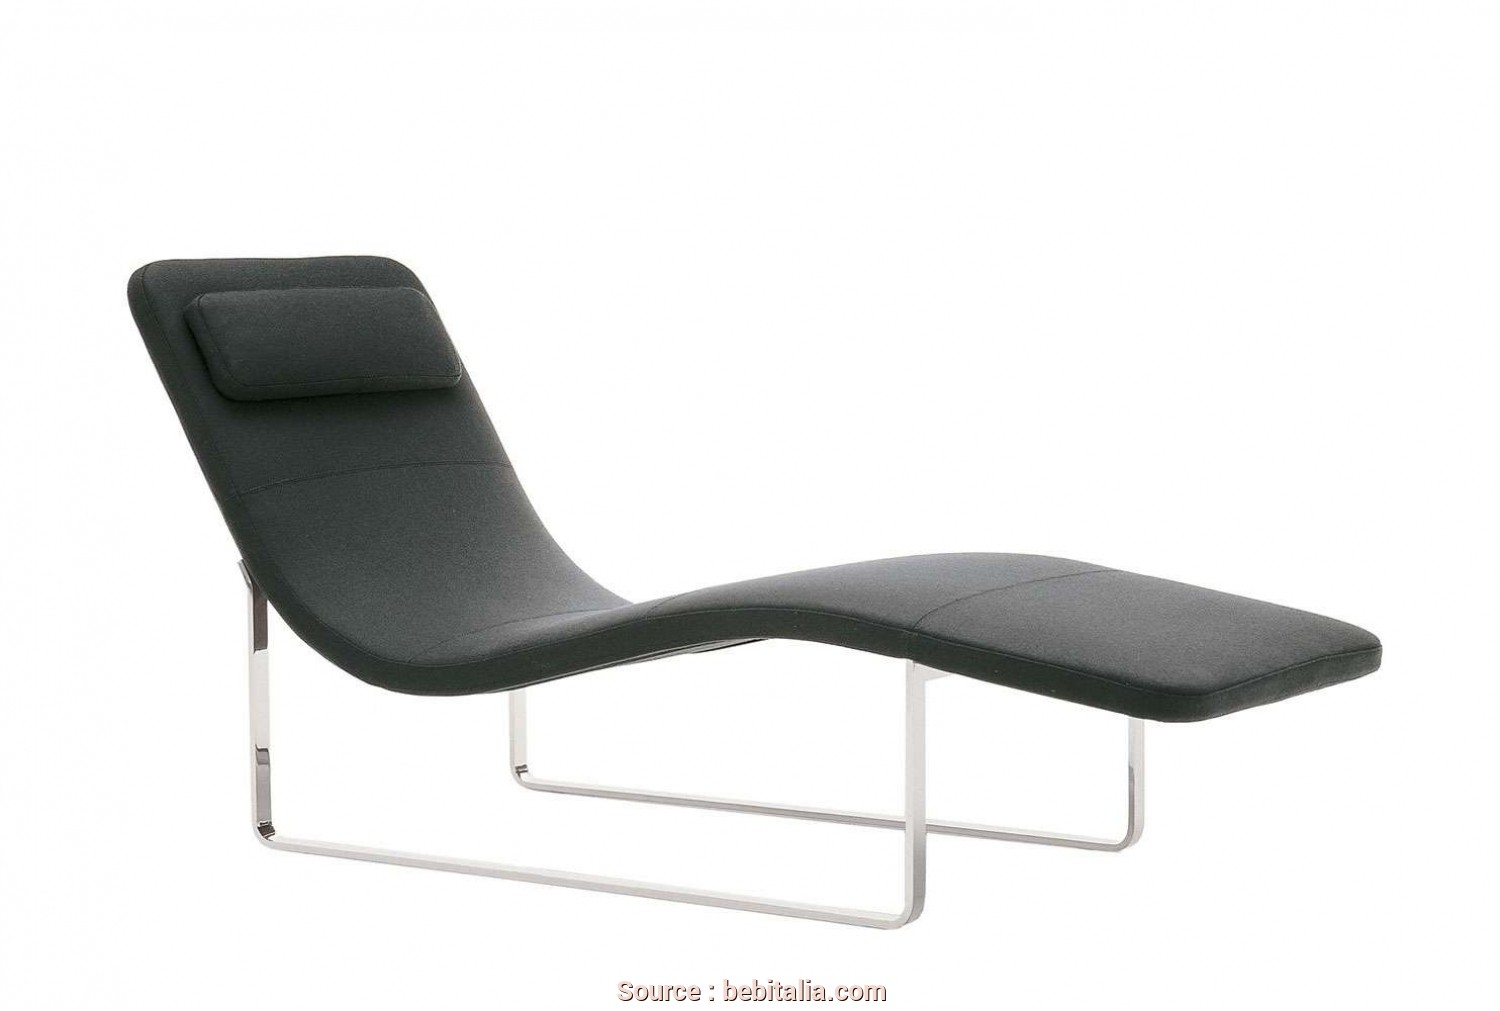 Bellissima 4 Chaise Longue Disegno Dwg